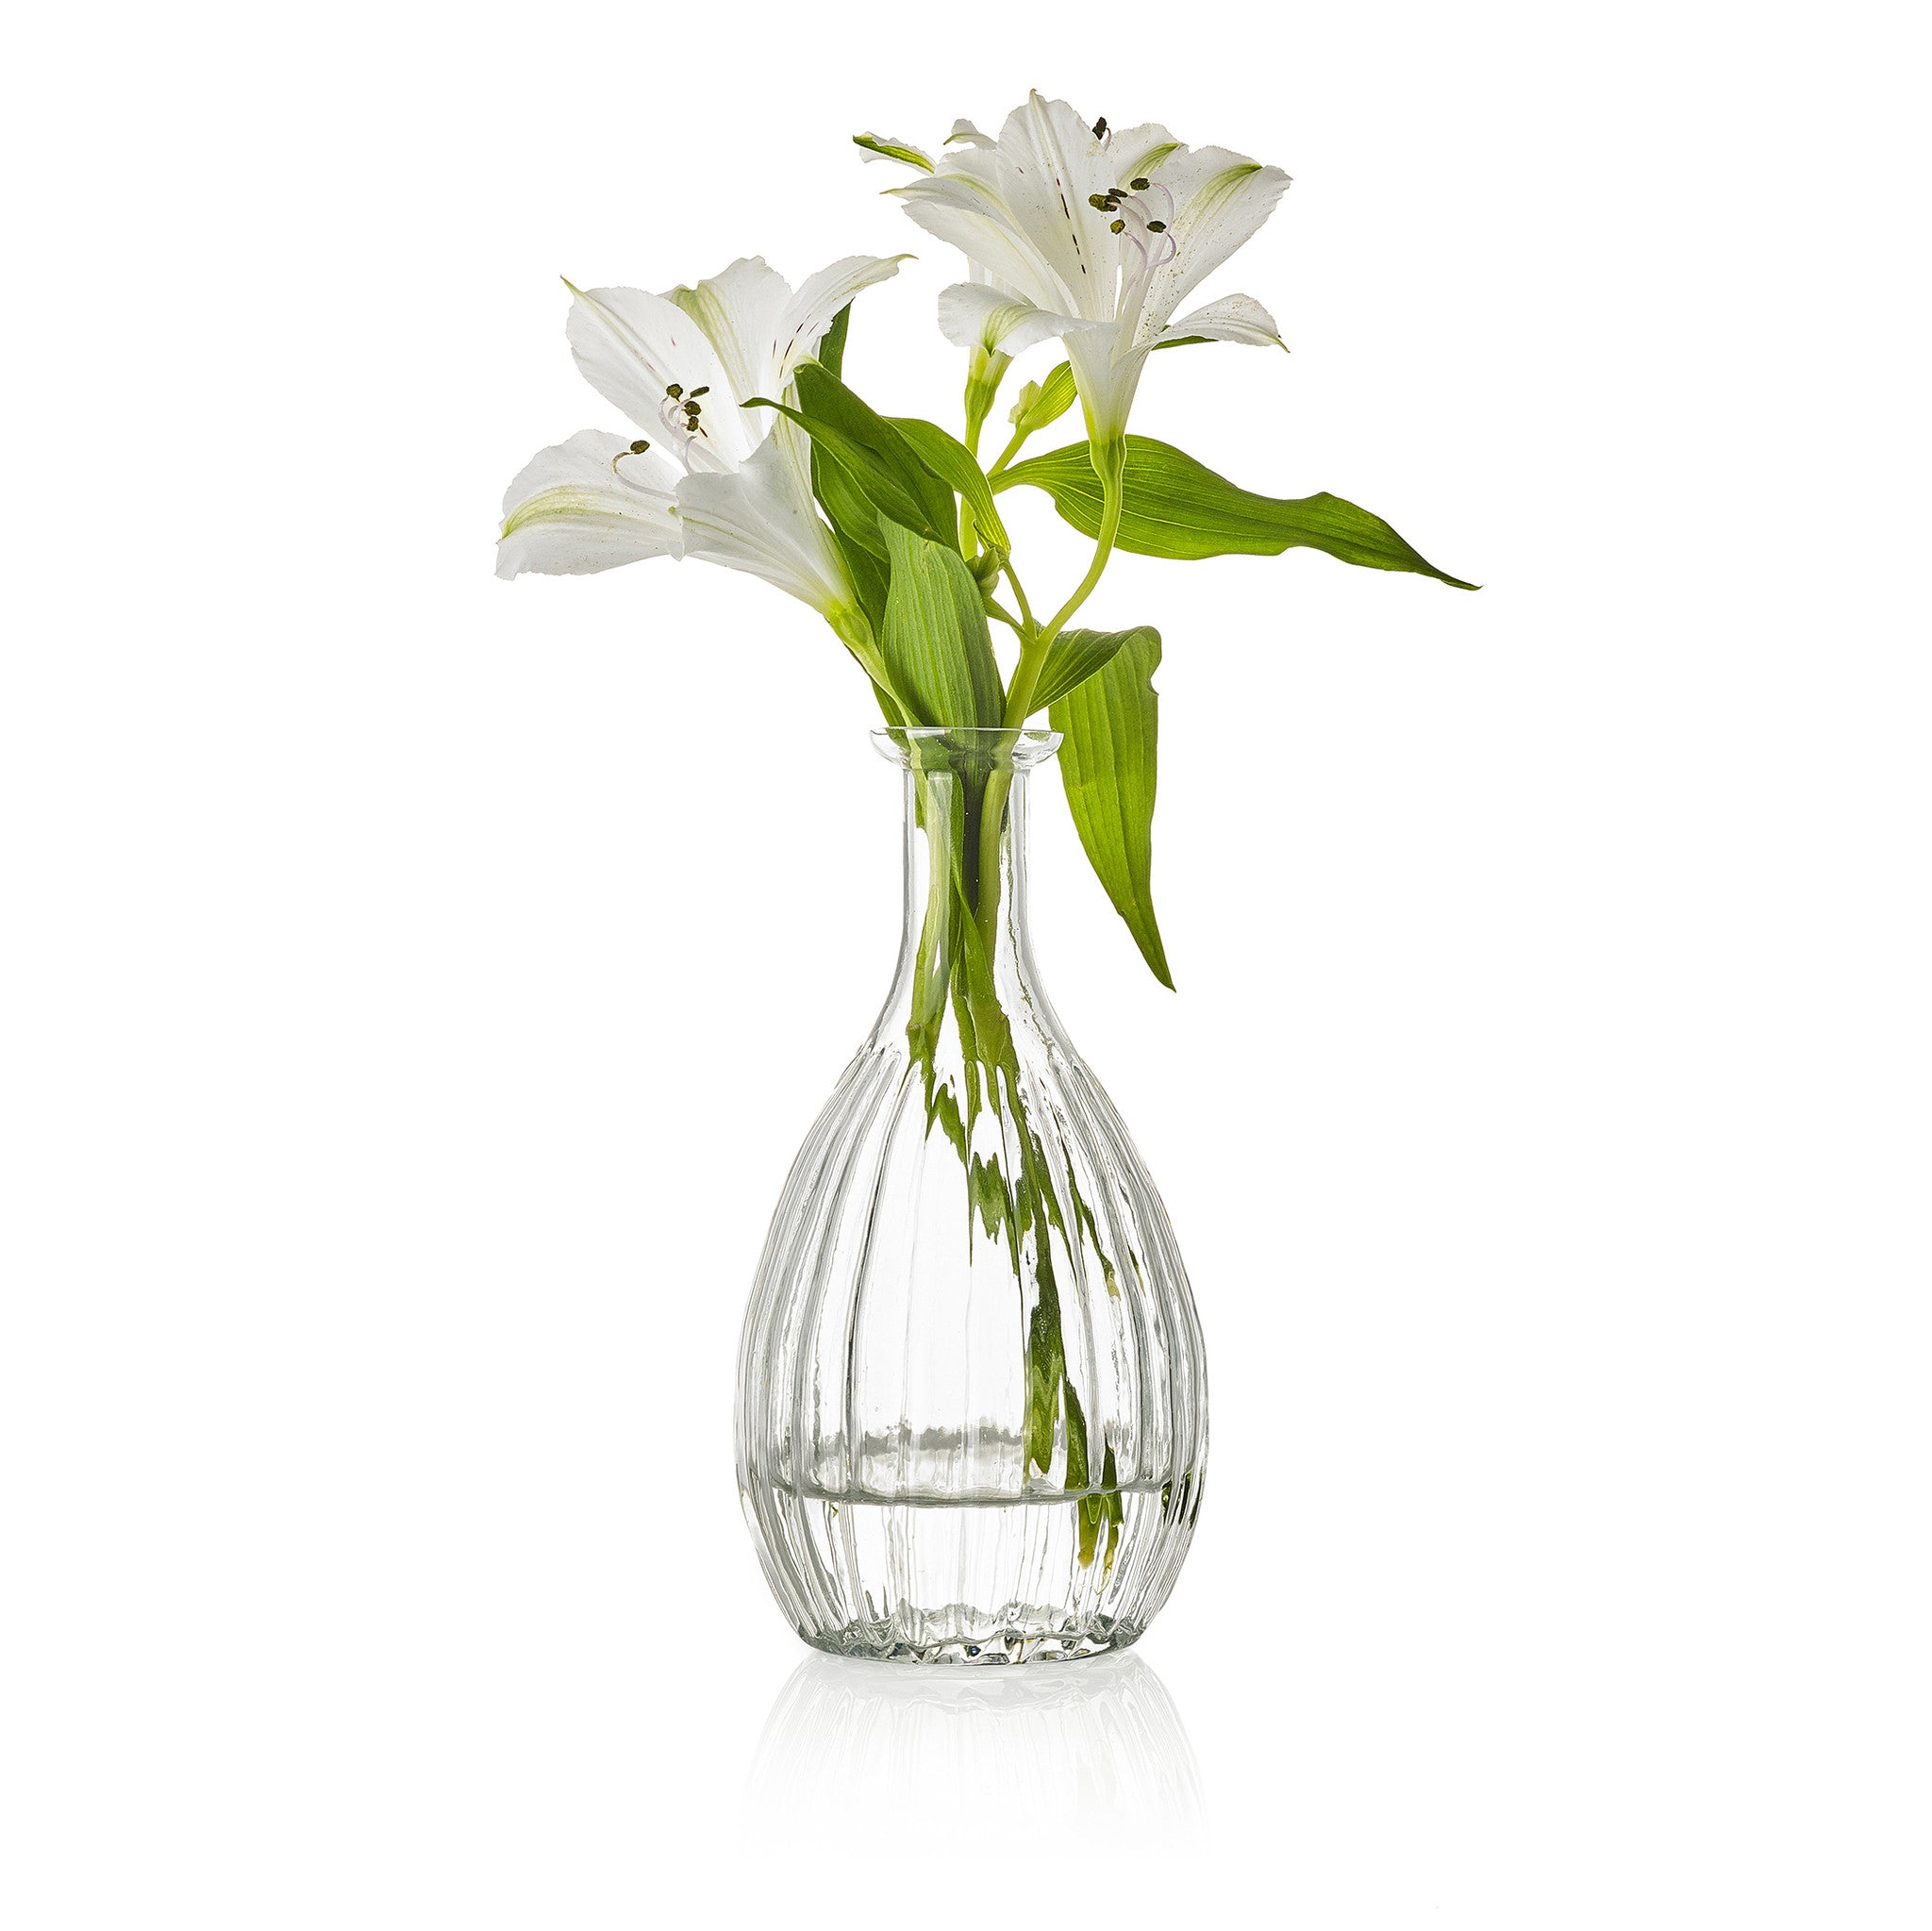 Glass Flower Vase - Amanda